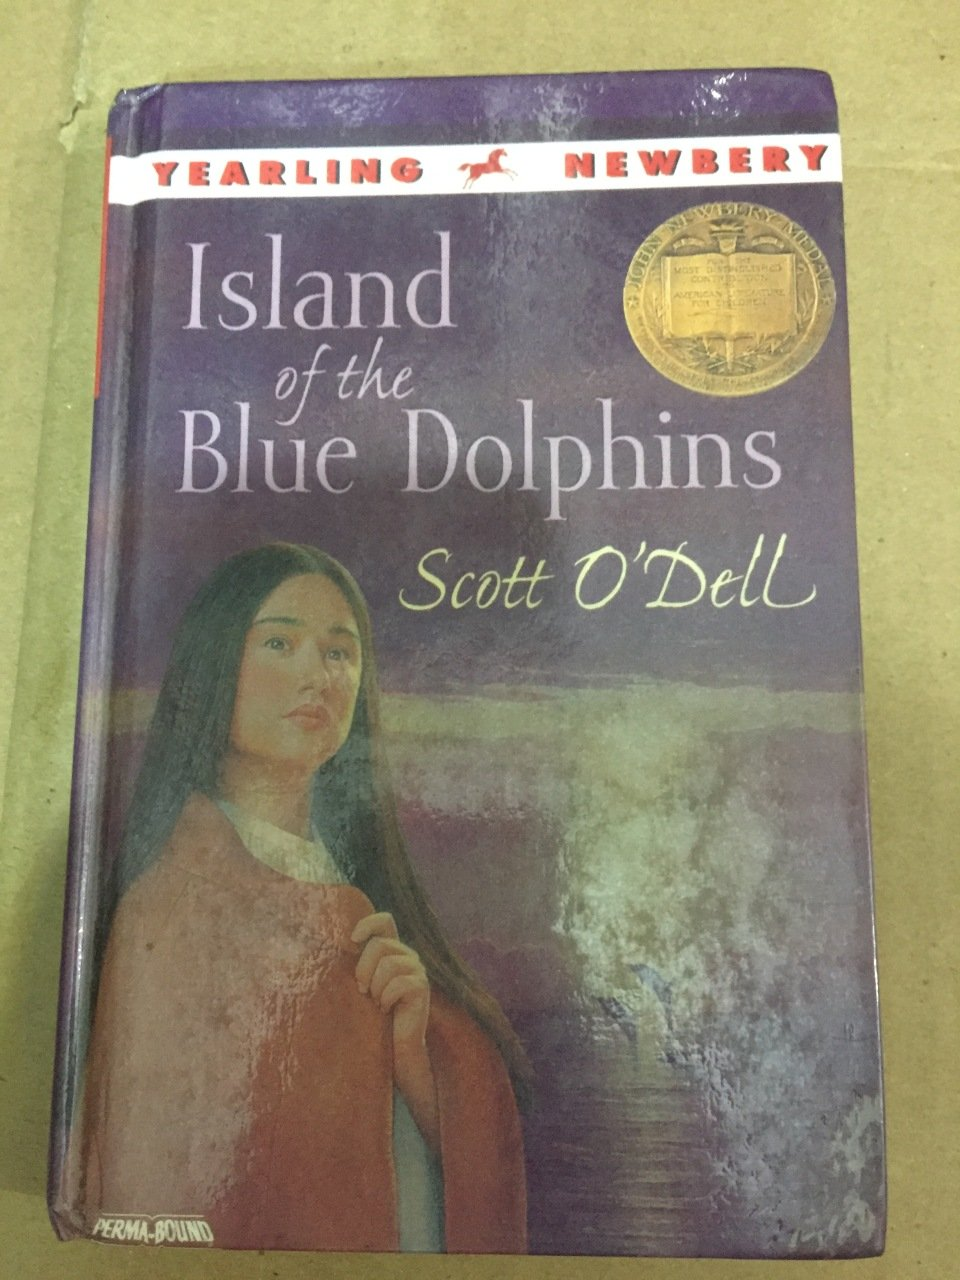 bravery in the book the island of the blue dolphins by scott odell Island of the blue dolphins book trailer brandon arevalo island of the blue dolphins, by scott o'dell (mpl book trailer #91) - duration: 1:11.